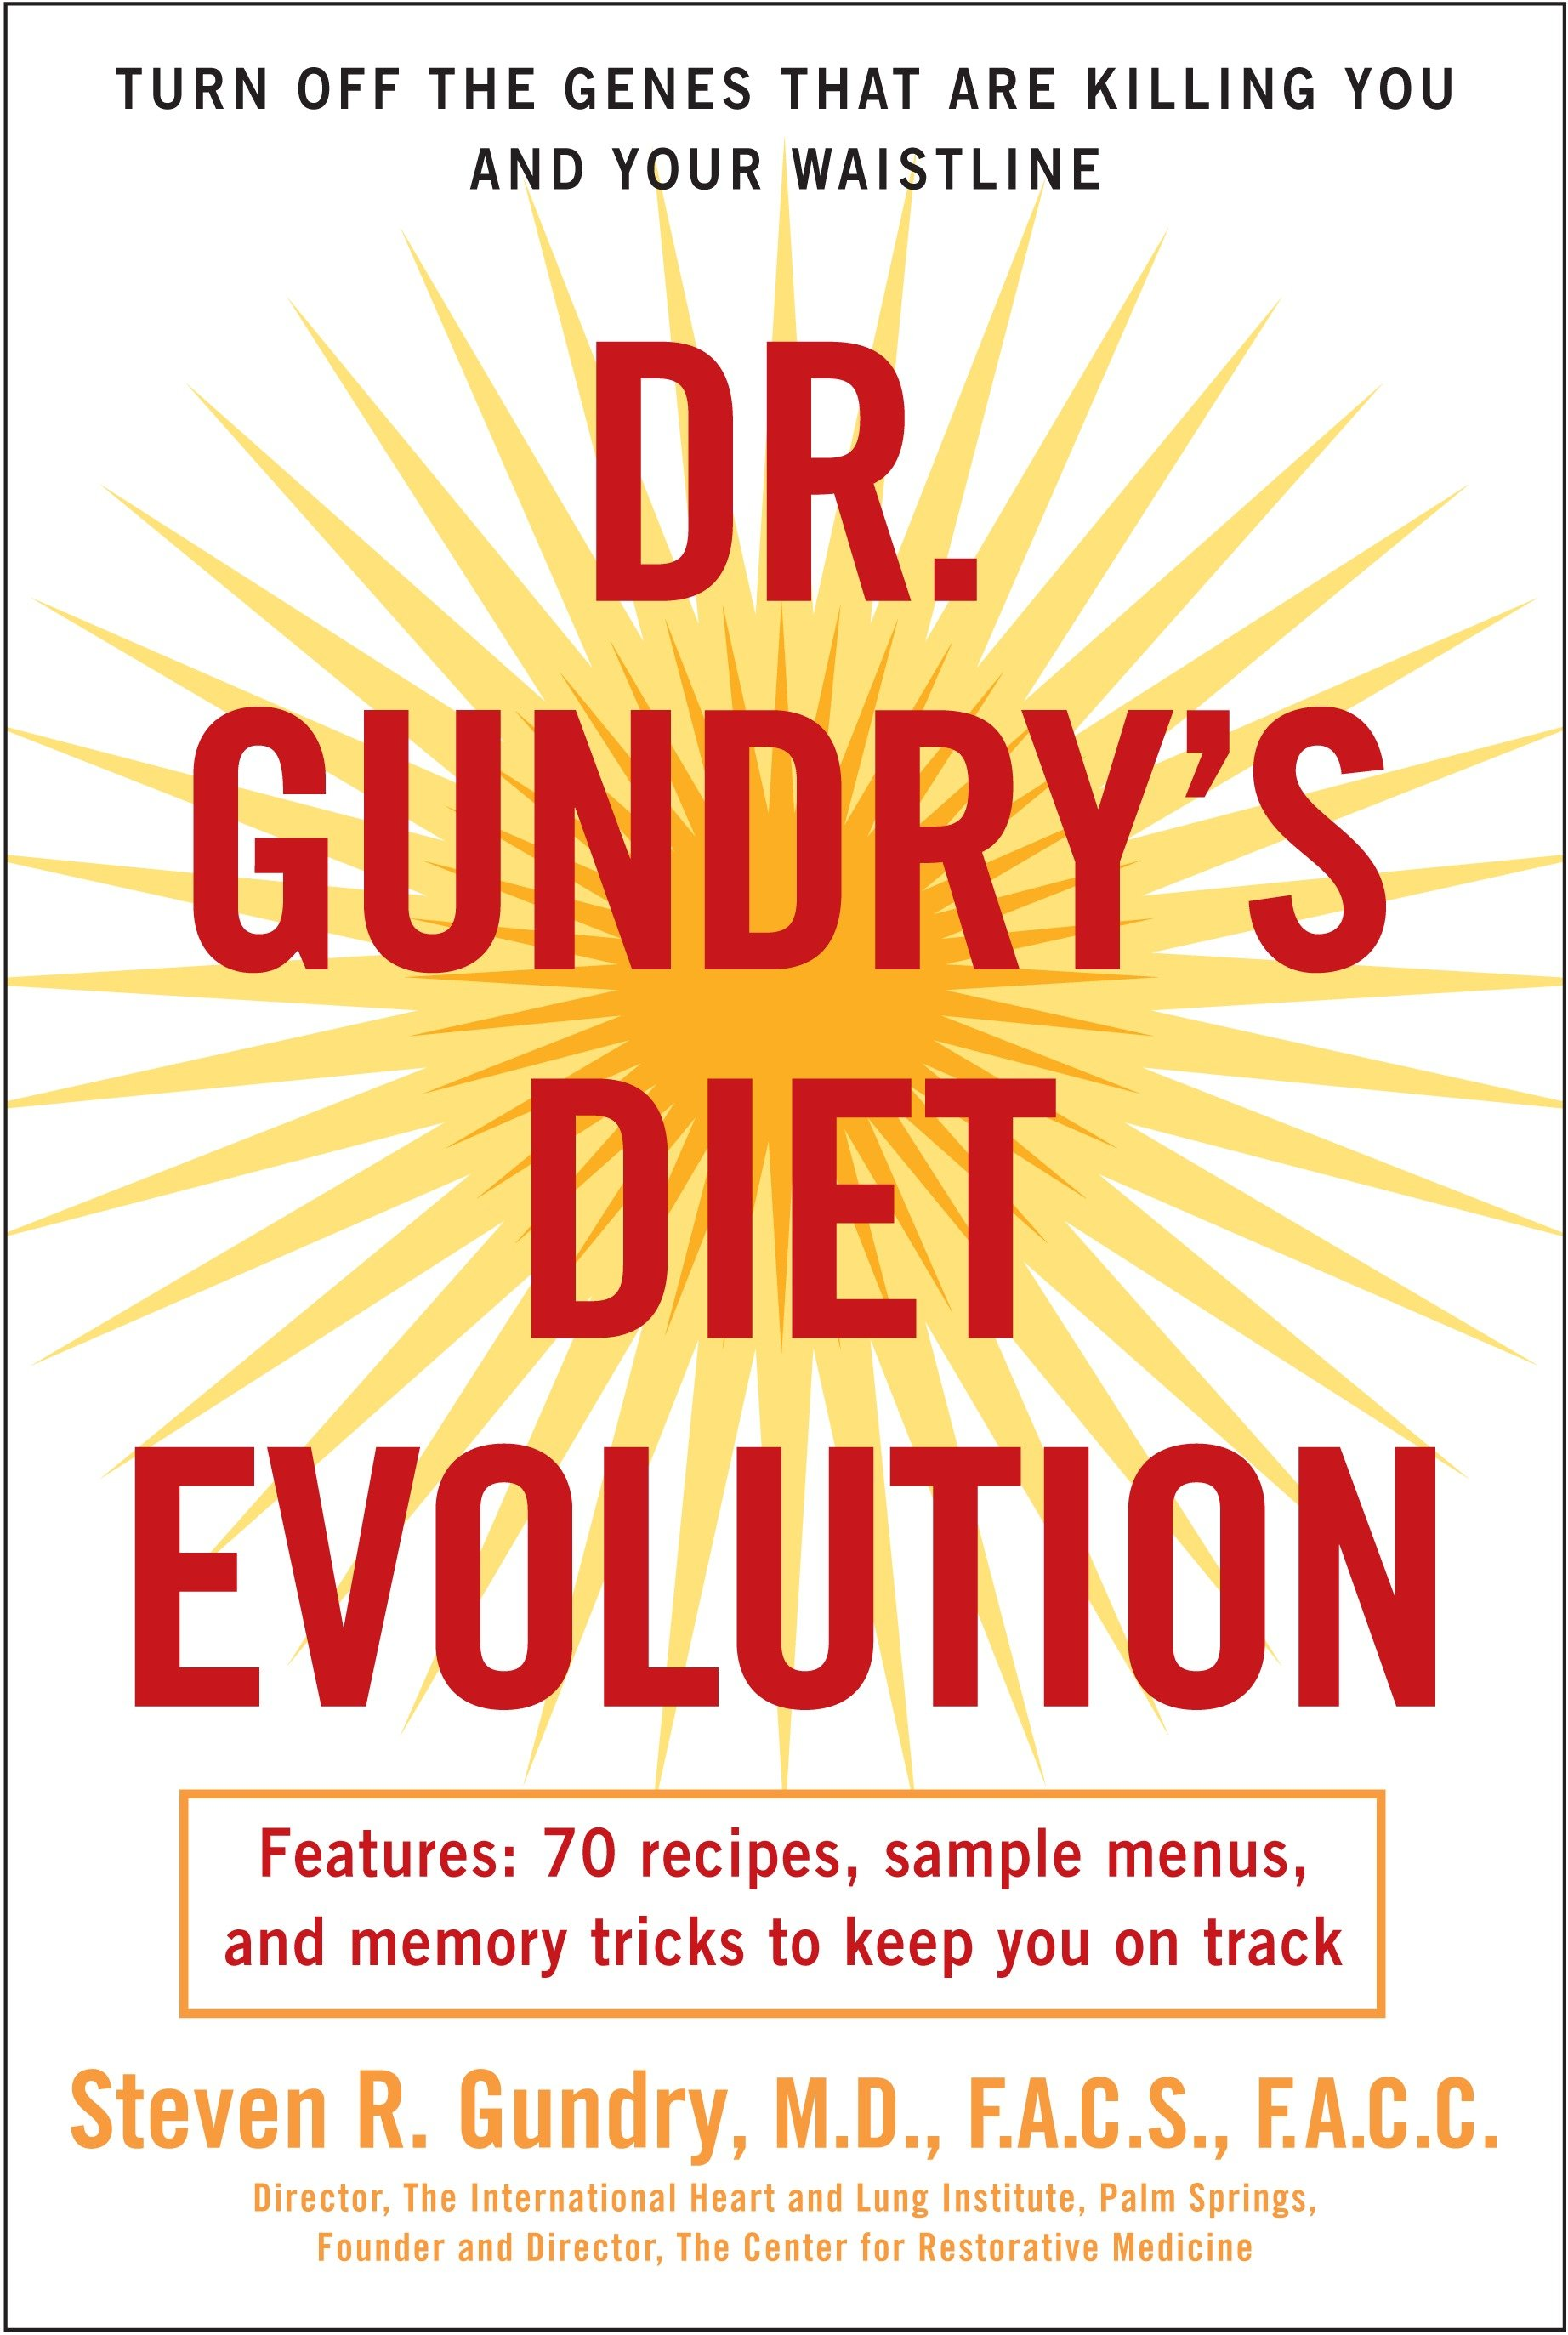 Dr. Gundry's Diet Evolution Turn Off the Genes That Are Killing You and Your Waistline